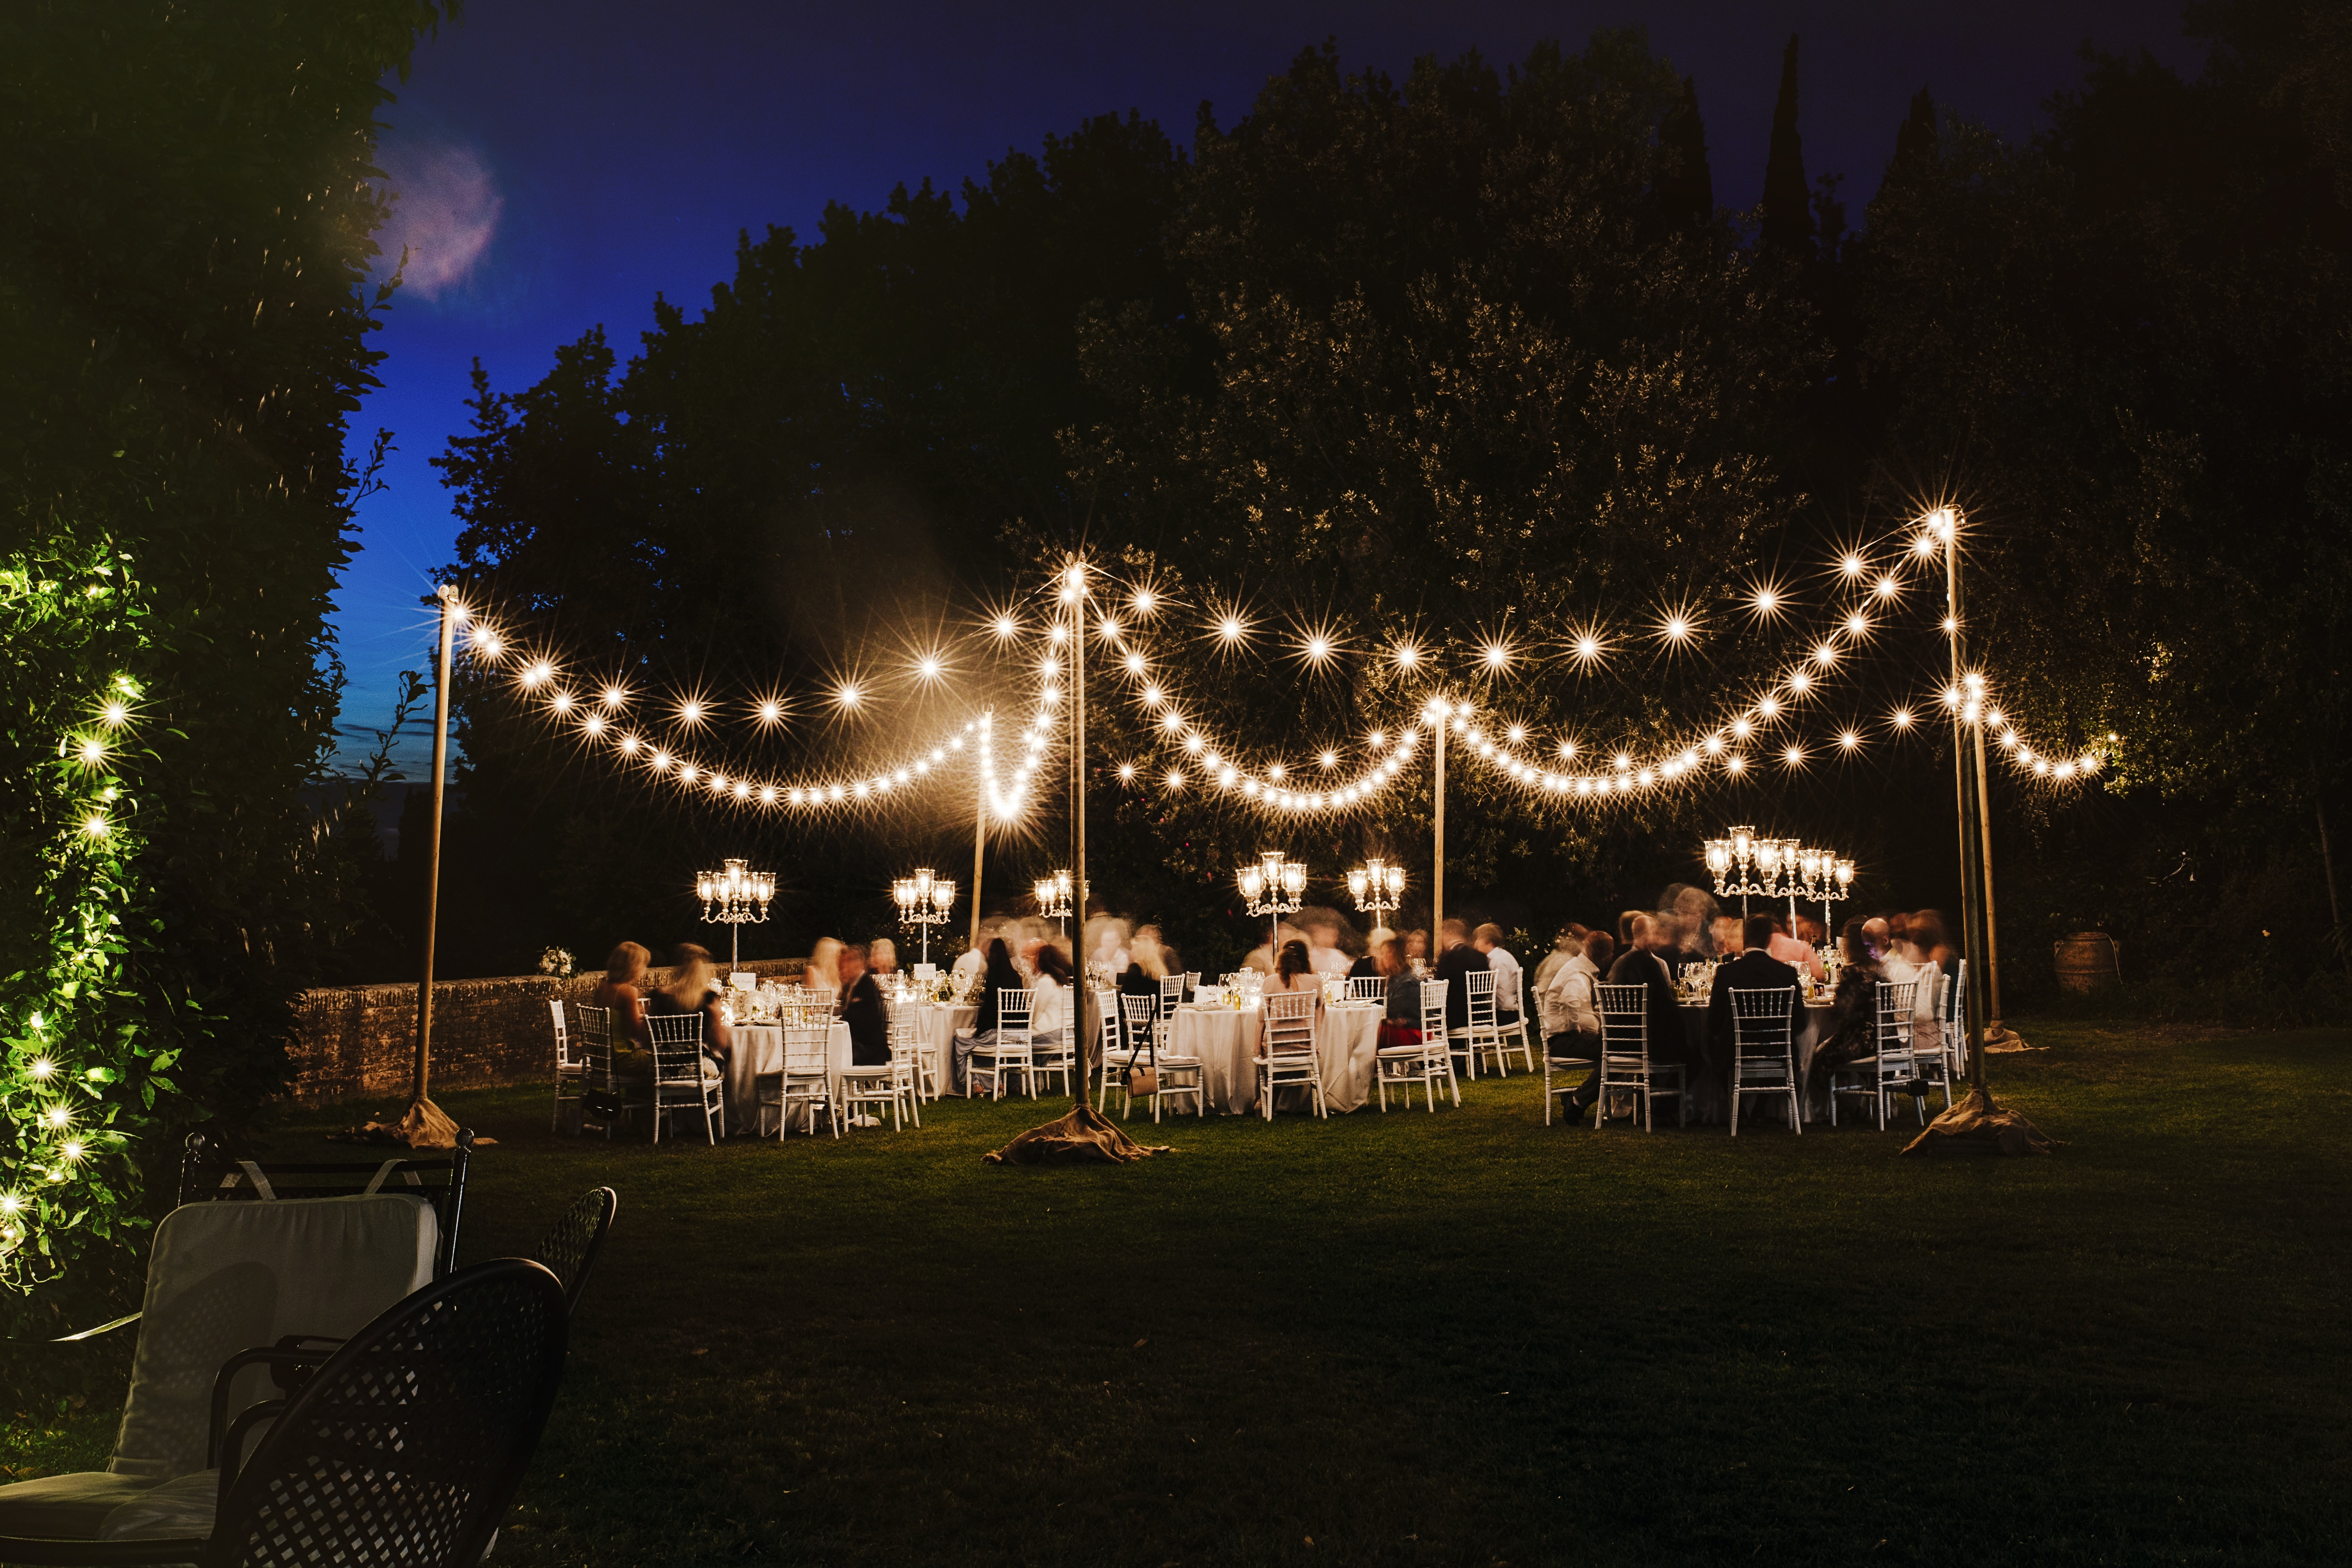 wedding dinner in the greenery of an ancient villa in Tuscany with a light show